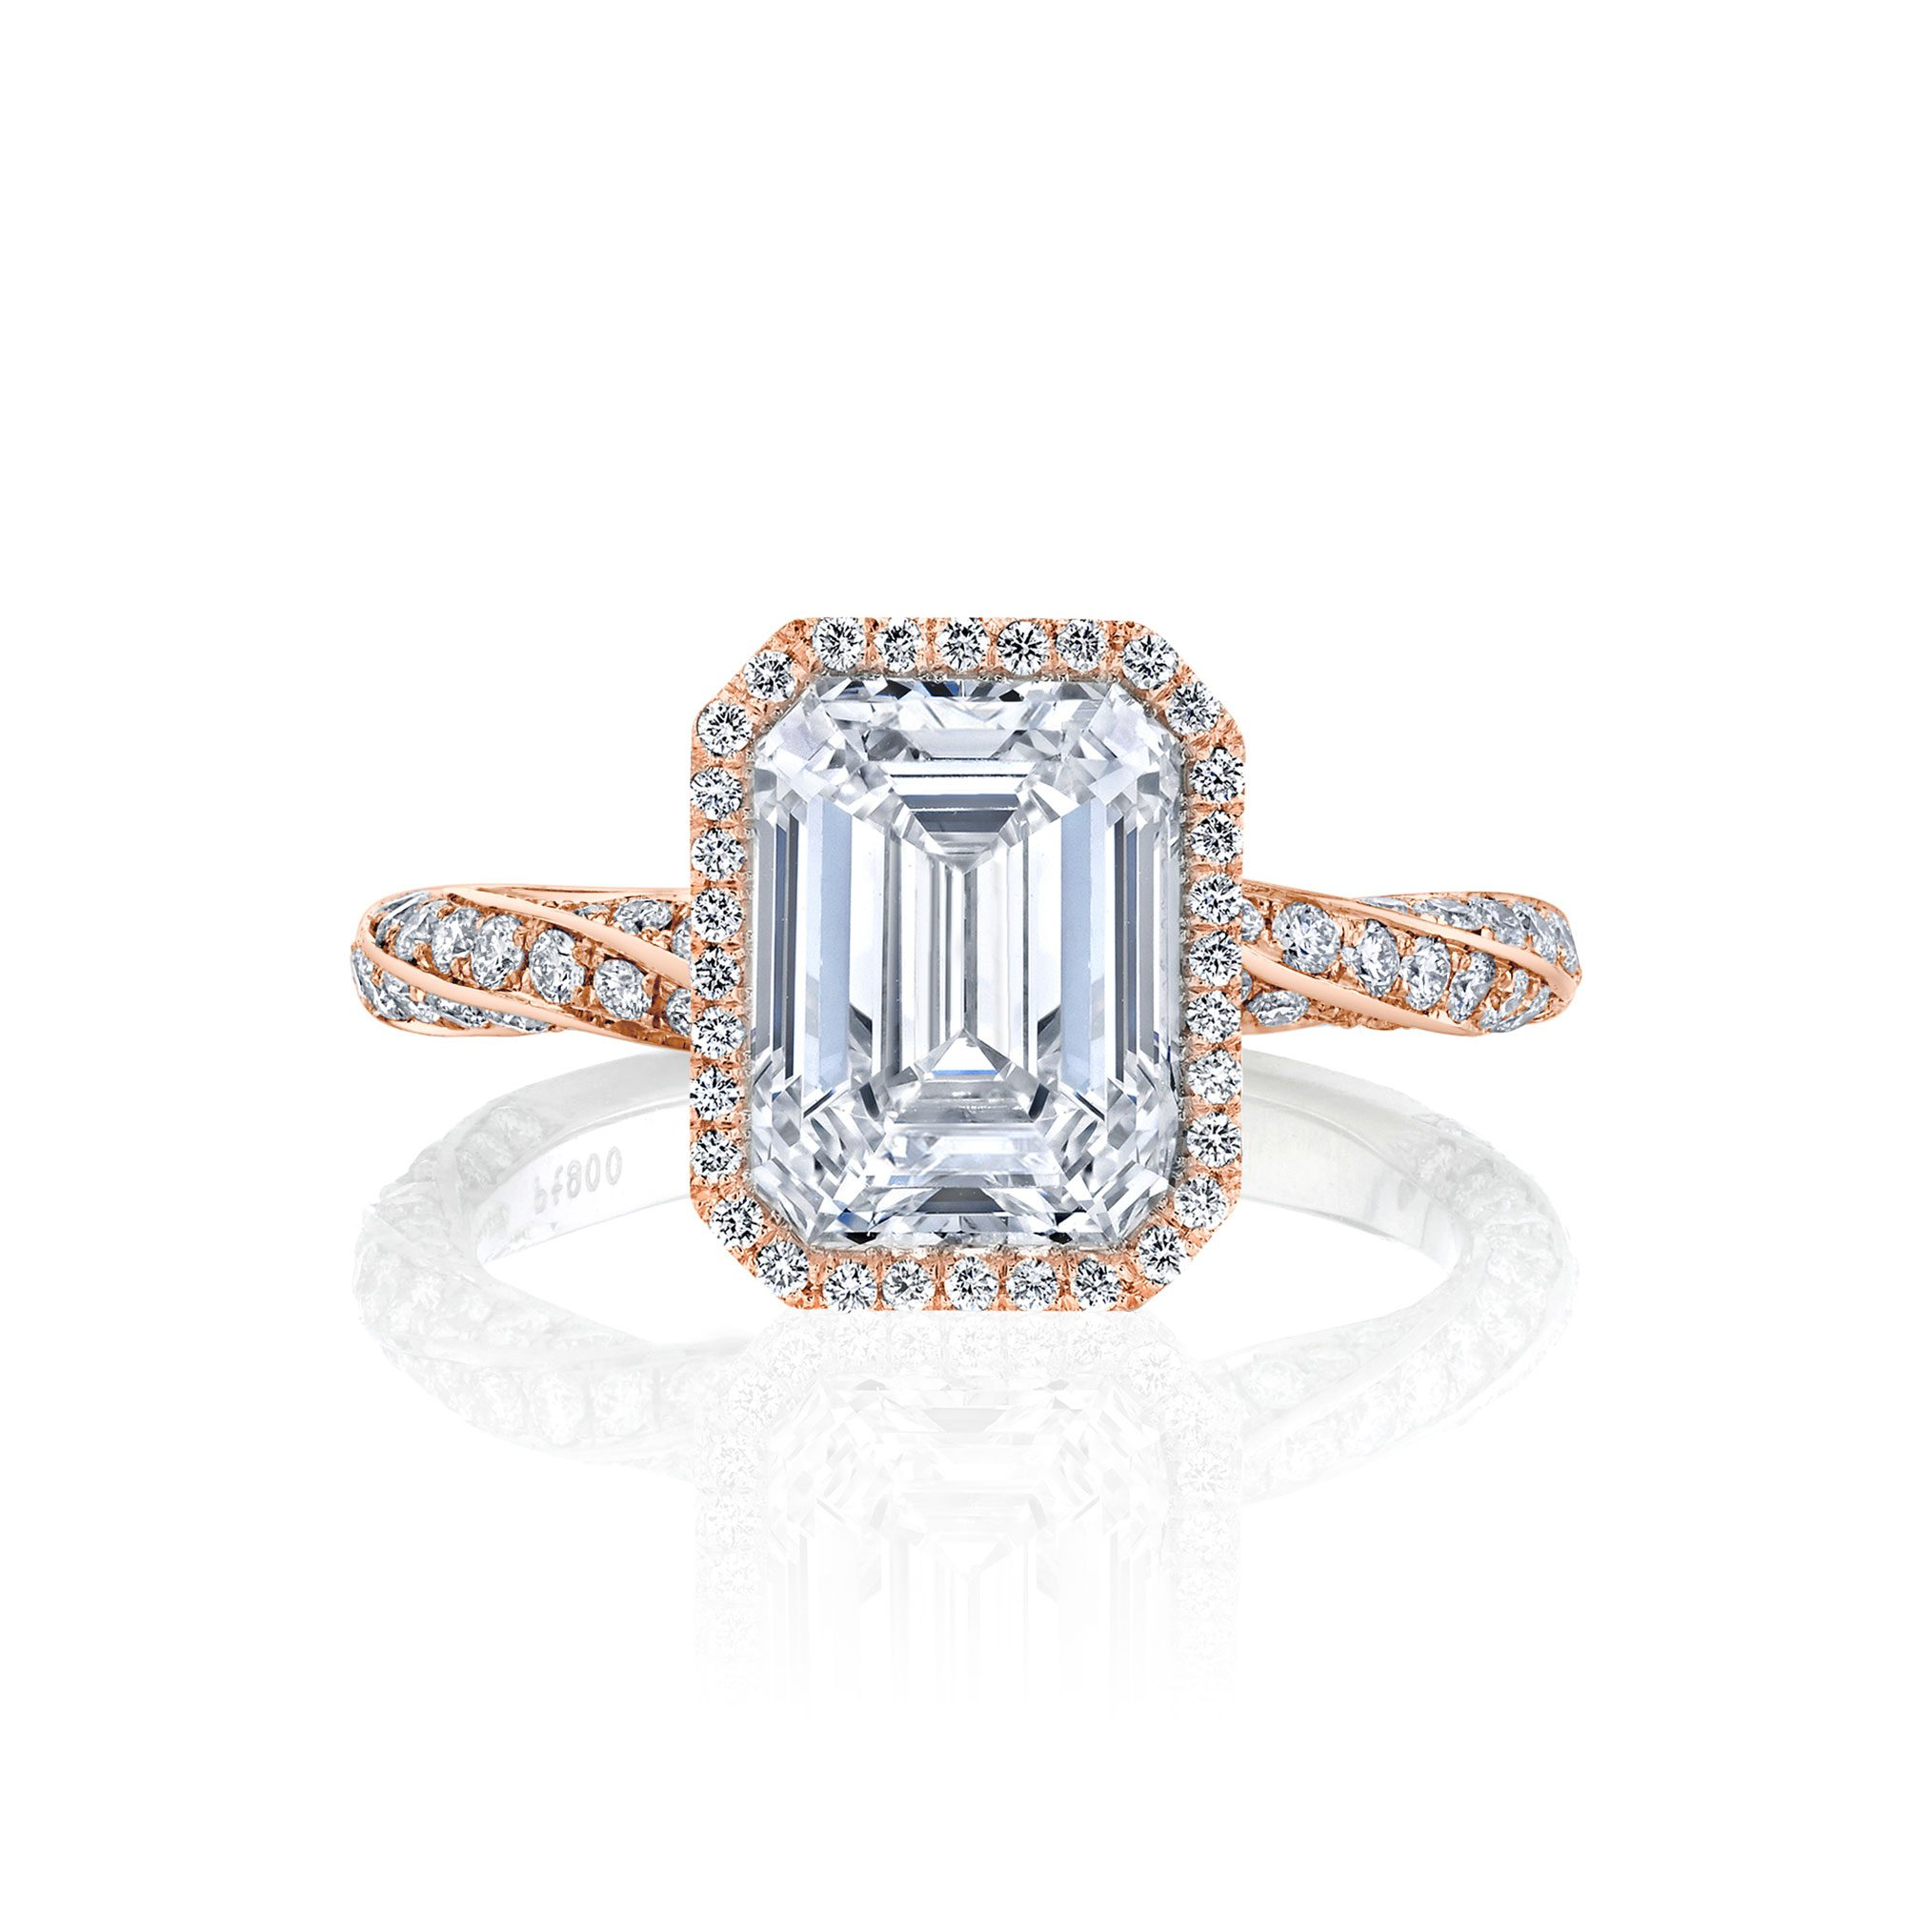 Camille Seamless Halo® Engagement Ring Emerald Cut with 18k rose gold twisted pavé band